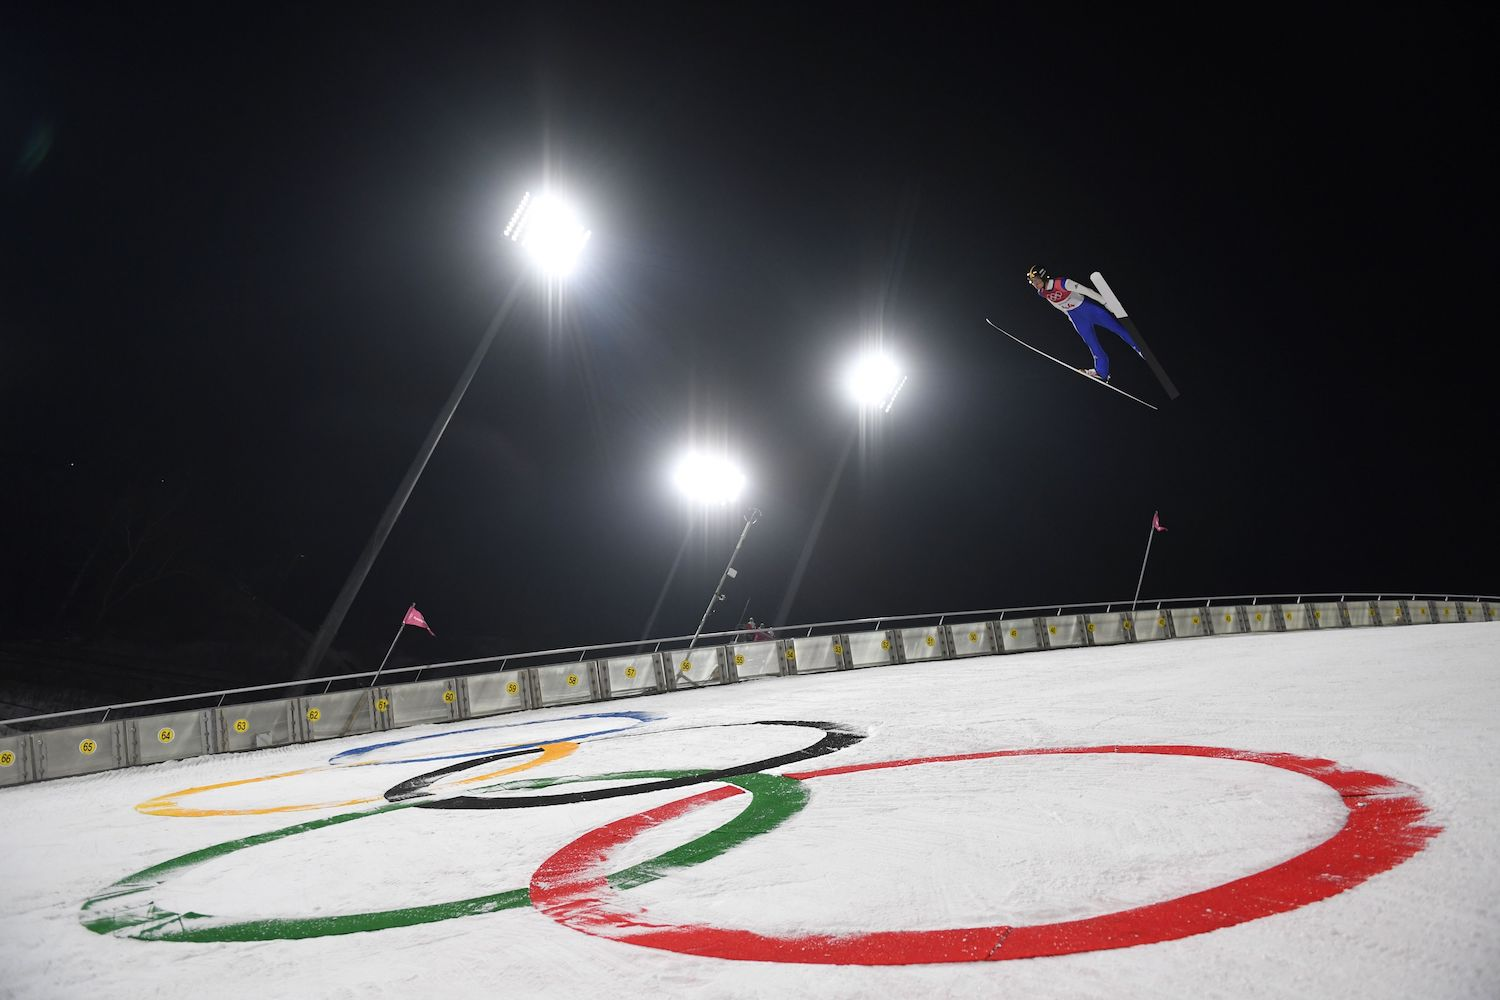 TOPSHOT - Germany's Karl Geiger competes in the men's large hill individual ski jumping trial event during the Pyeongchang 2018 Winter Olympic Games on February 16, 2018, in Pyeongchang. / AFP PHOTO / Christof STACHE        (Photo credit should read CHRISTOF STACHE/AFP/Getty Images)